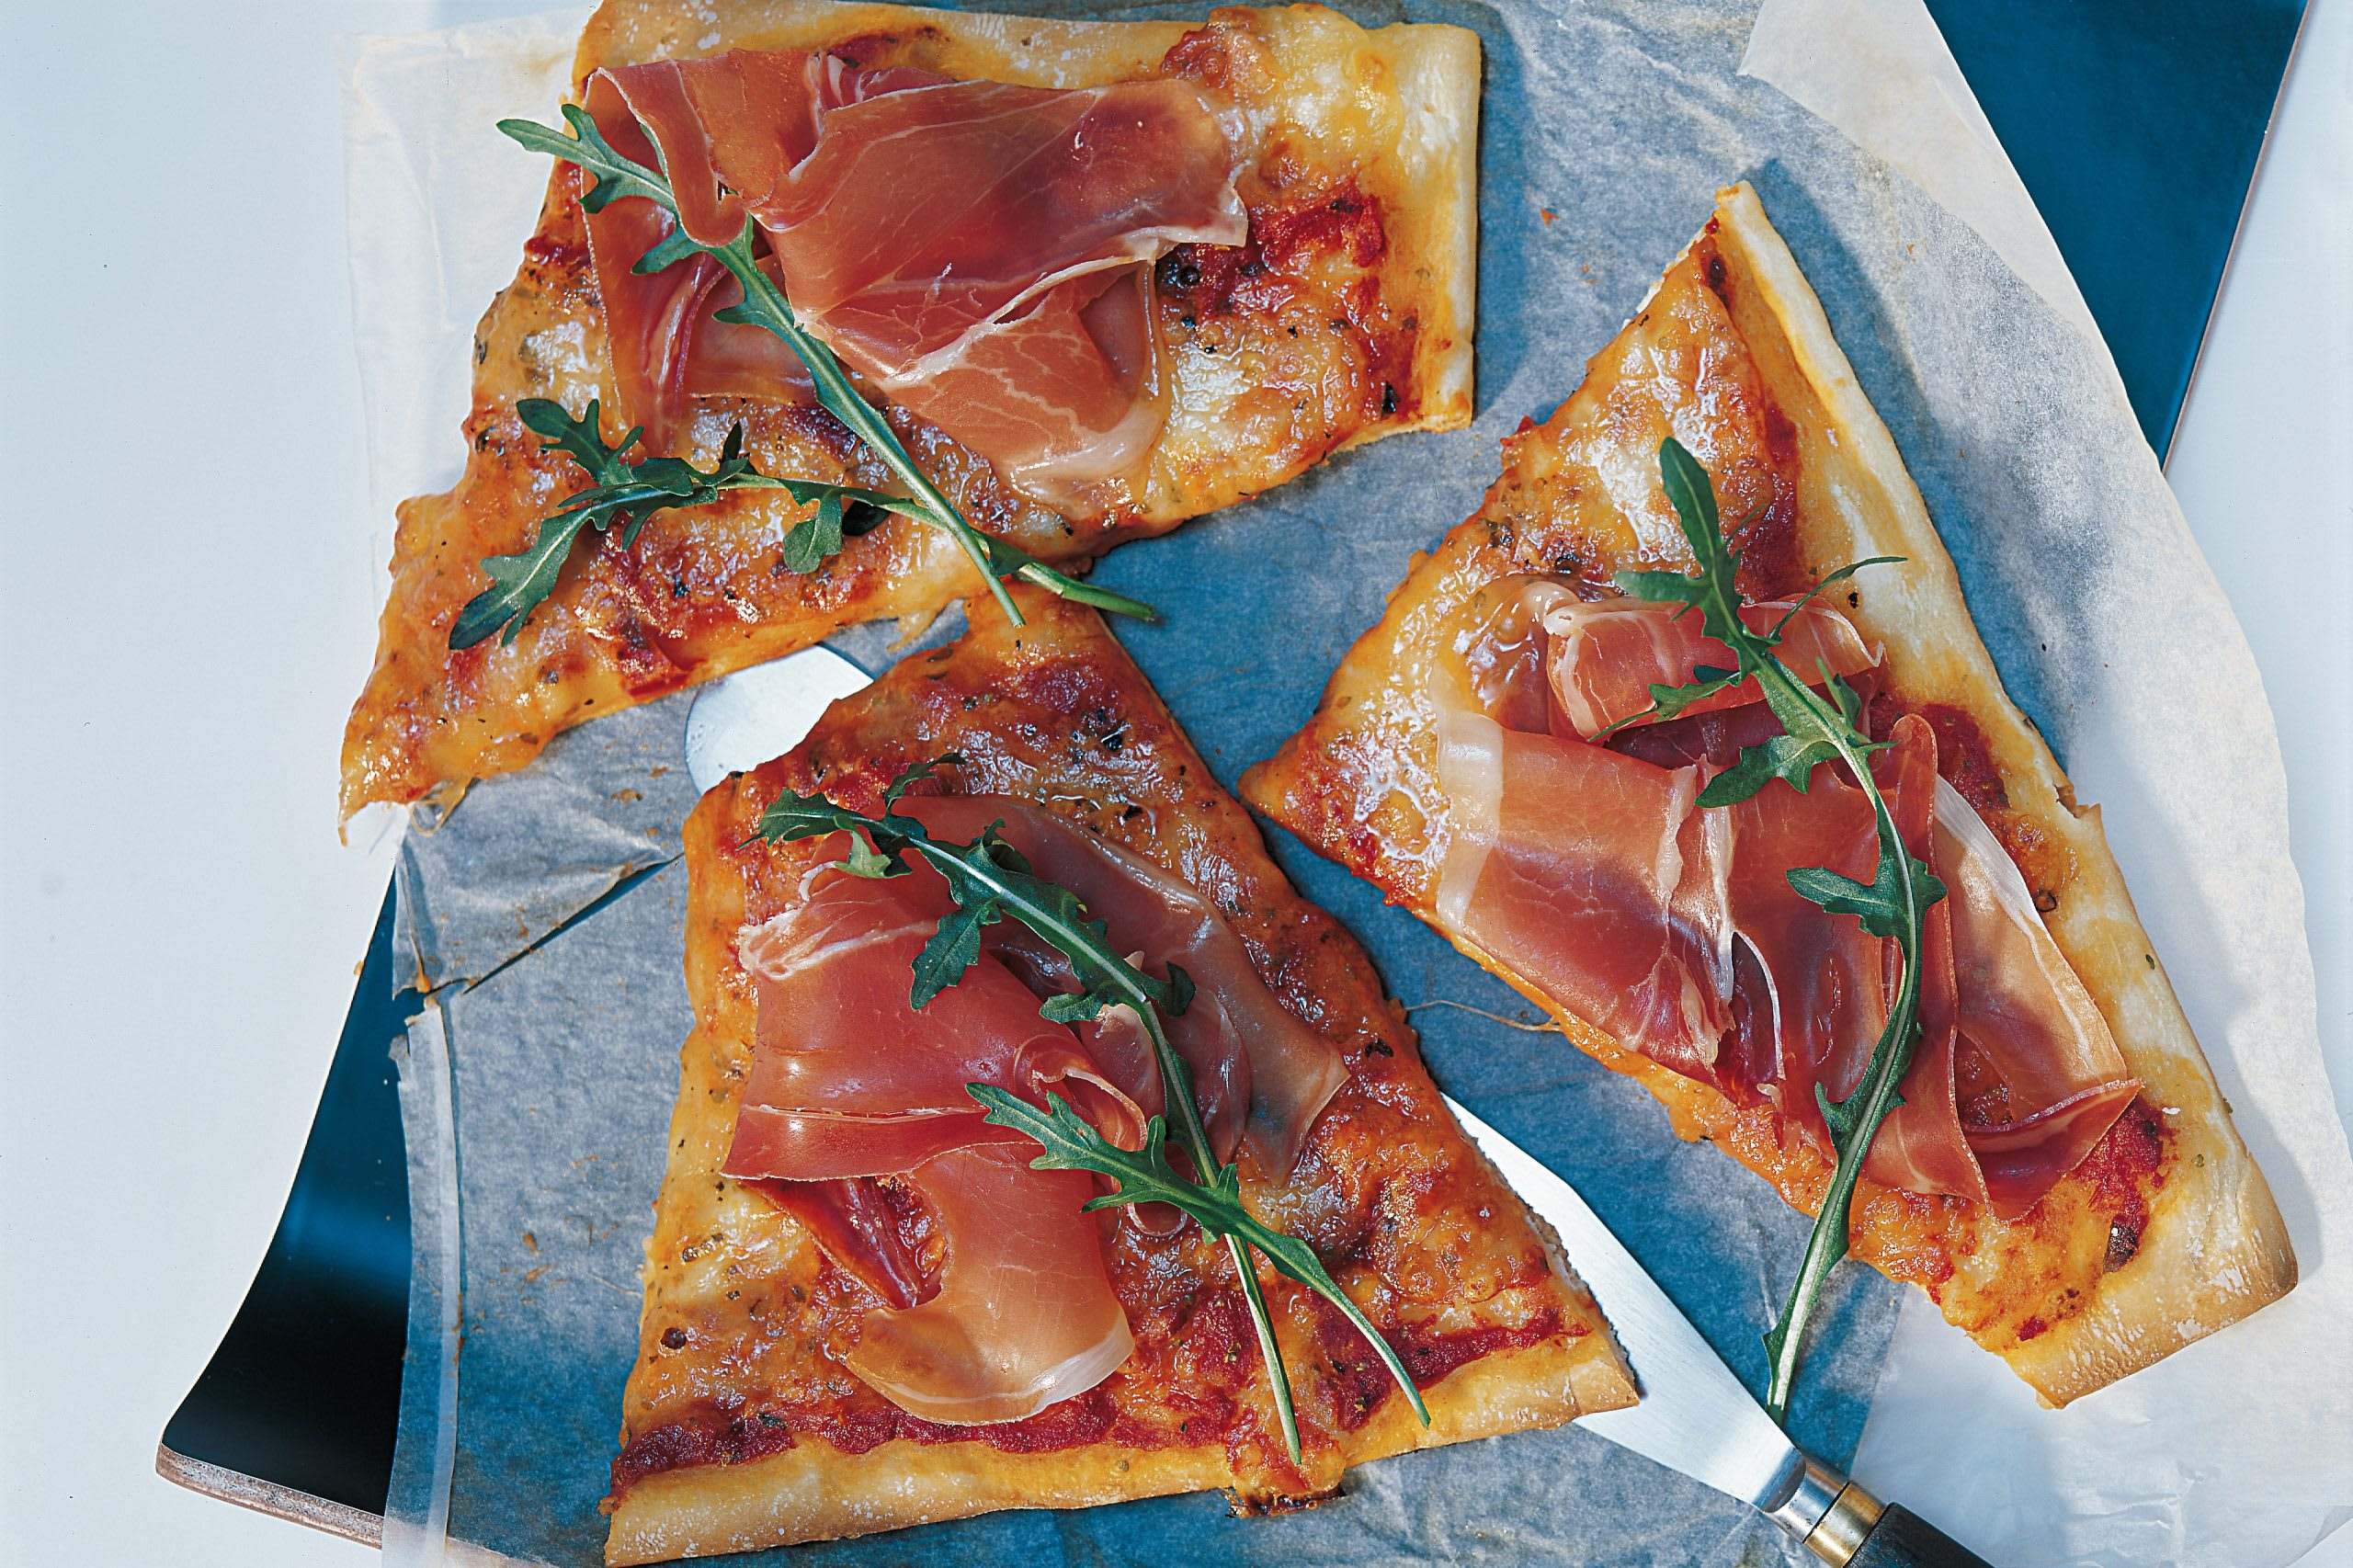 Pizza proscuitto mit Rucola